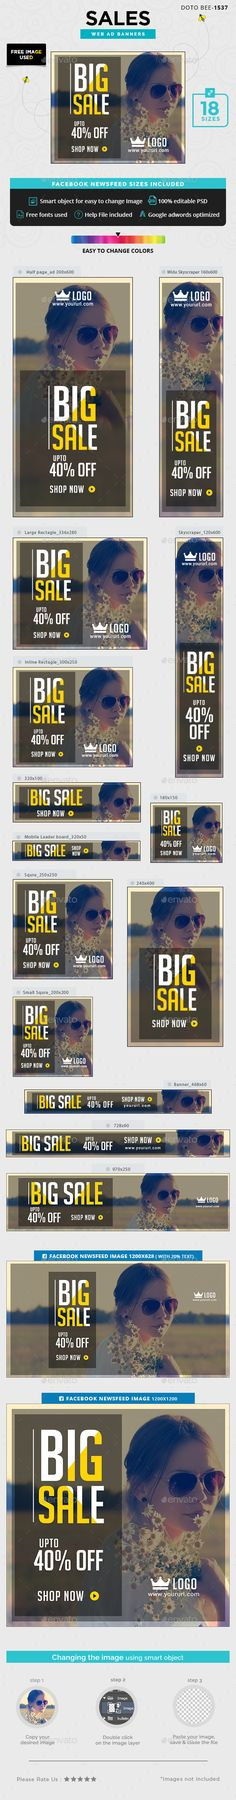 Sales Banners Design - Banners & Ads Web Template PSD. Download here: https://graphicriver.net/item/sales-banners/16958015?s_rank=3&ref=yinkira